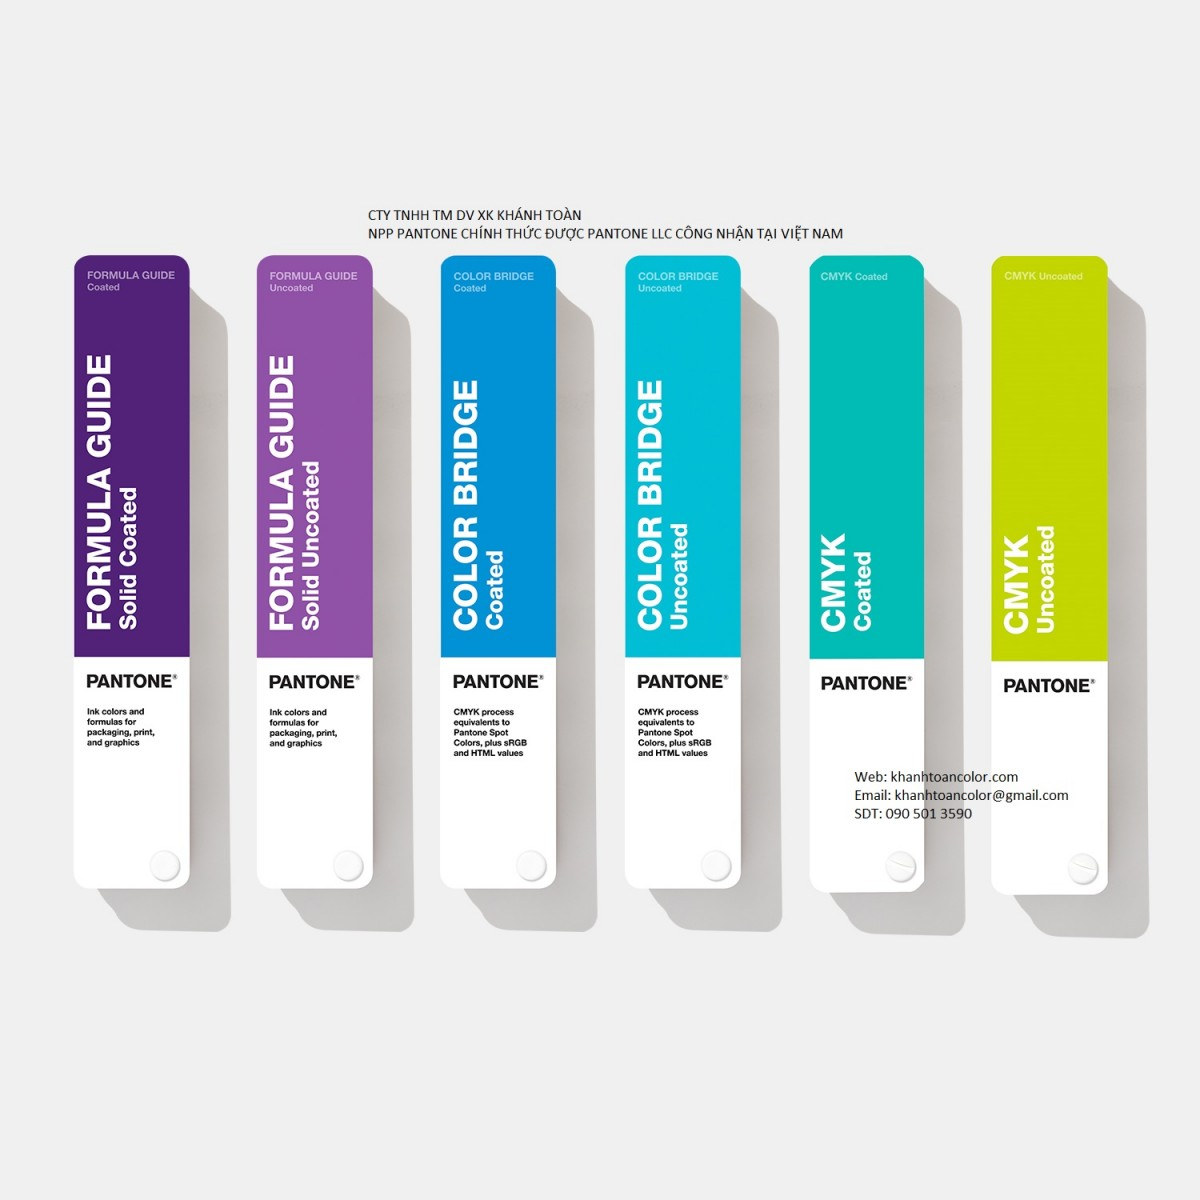 khanhtoancolor.com - Pantone PMS Spot Color Guide Essential GPG301A (New 2019)(3)